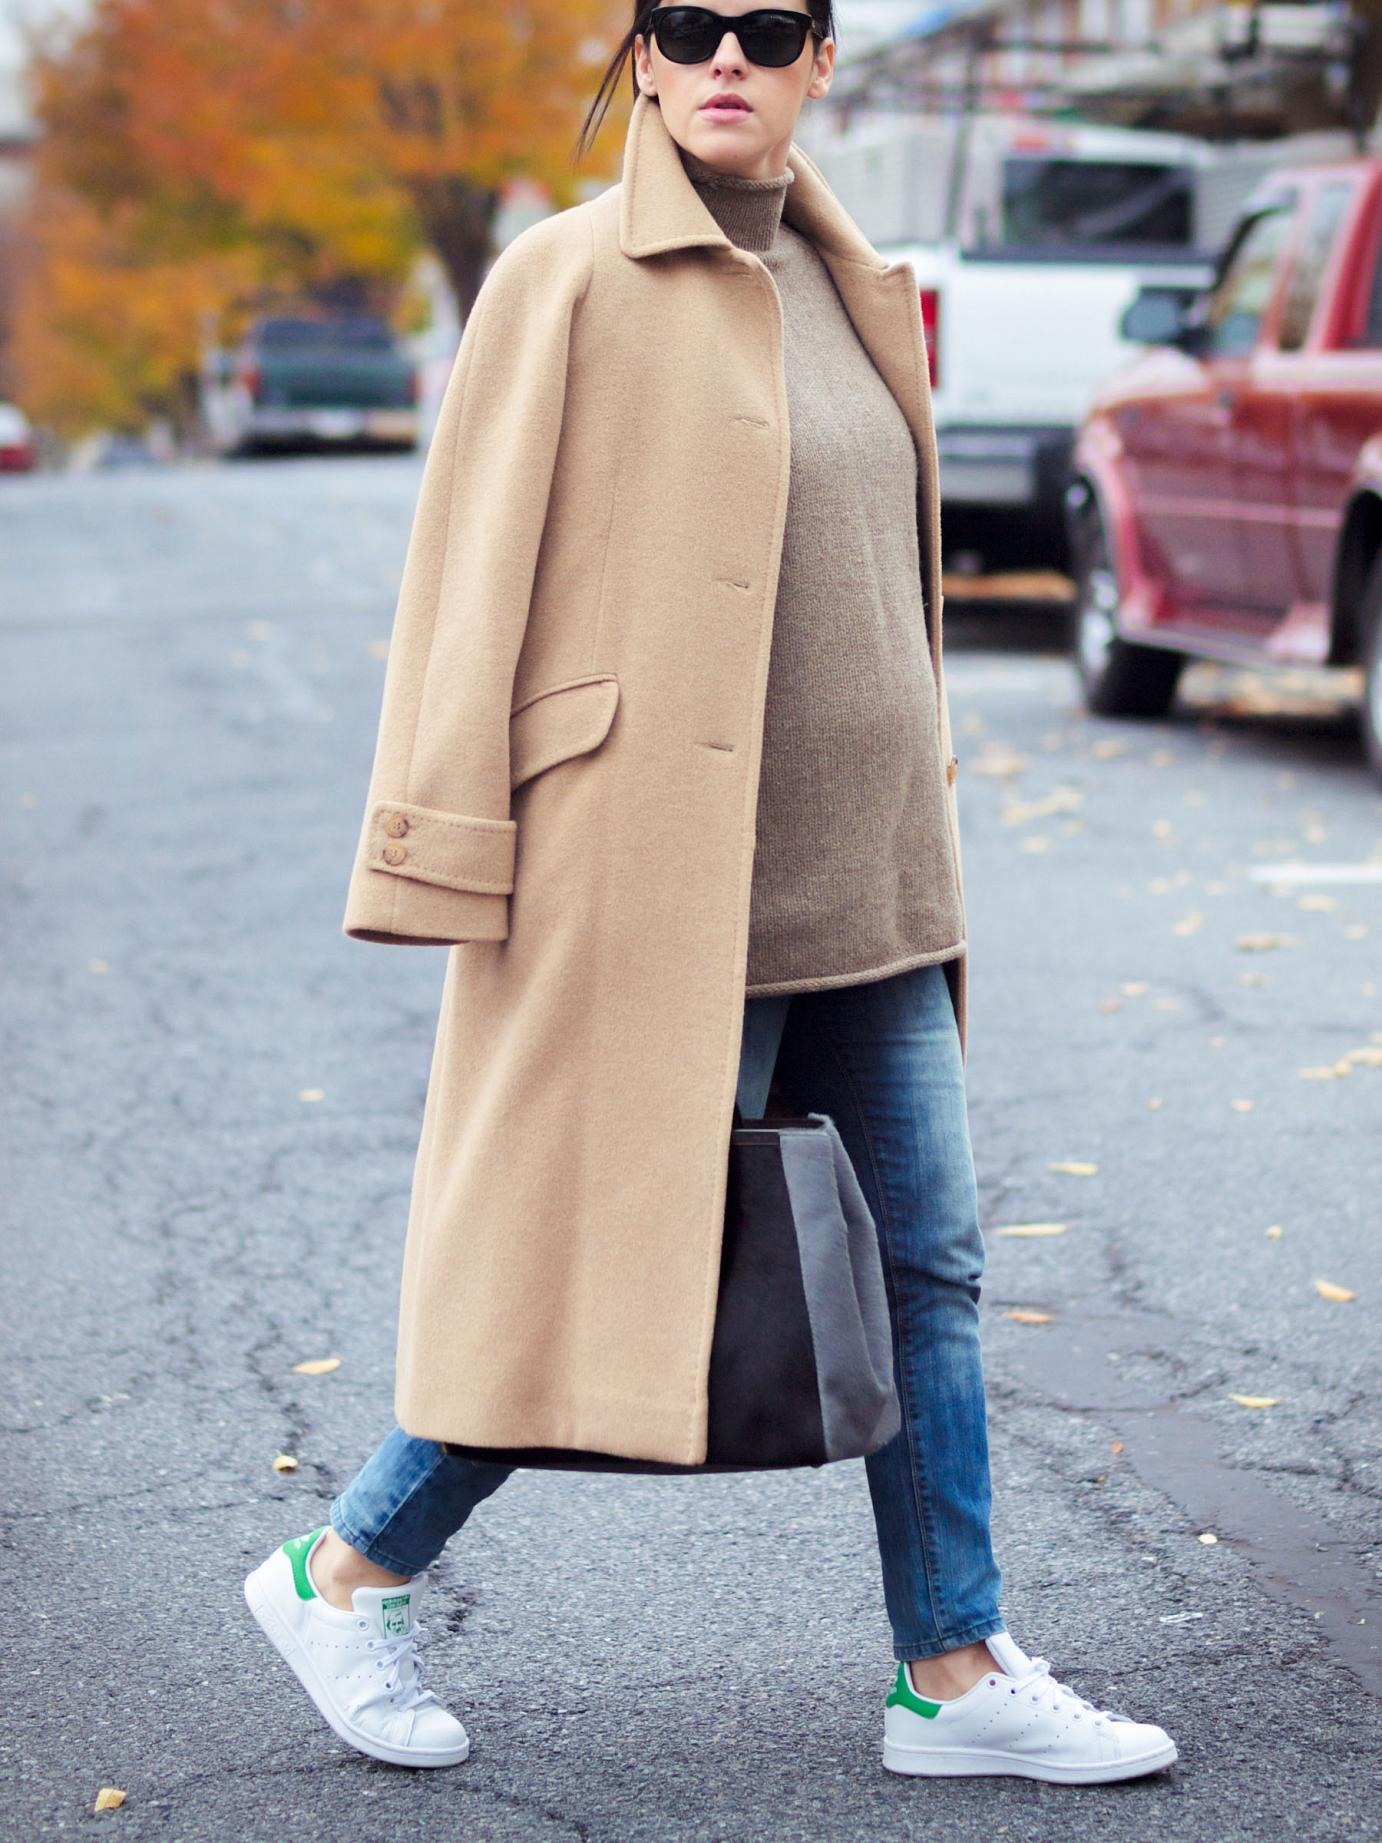 bittersweet colours, fall, fall coats, fall street style, street style, maternity style, 23 weeks, bump style, camel coat, turtleneck, stan smith adidas, sneakers trend, 2jours bicolor fendi bag, fendi bag, casual loook,